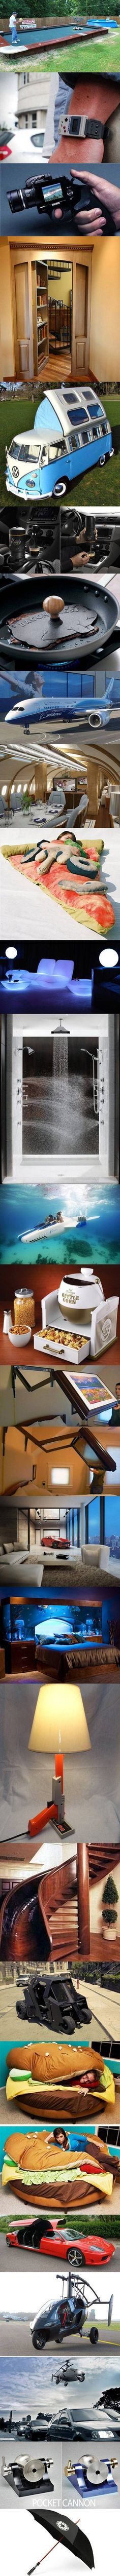 We've rounded up some more cool gadgets and products. Words cannot explain how much I want the plane and gun camcorder